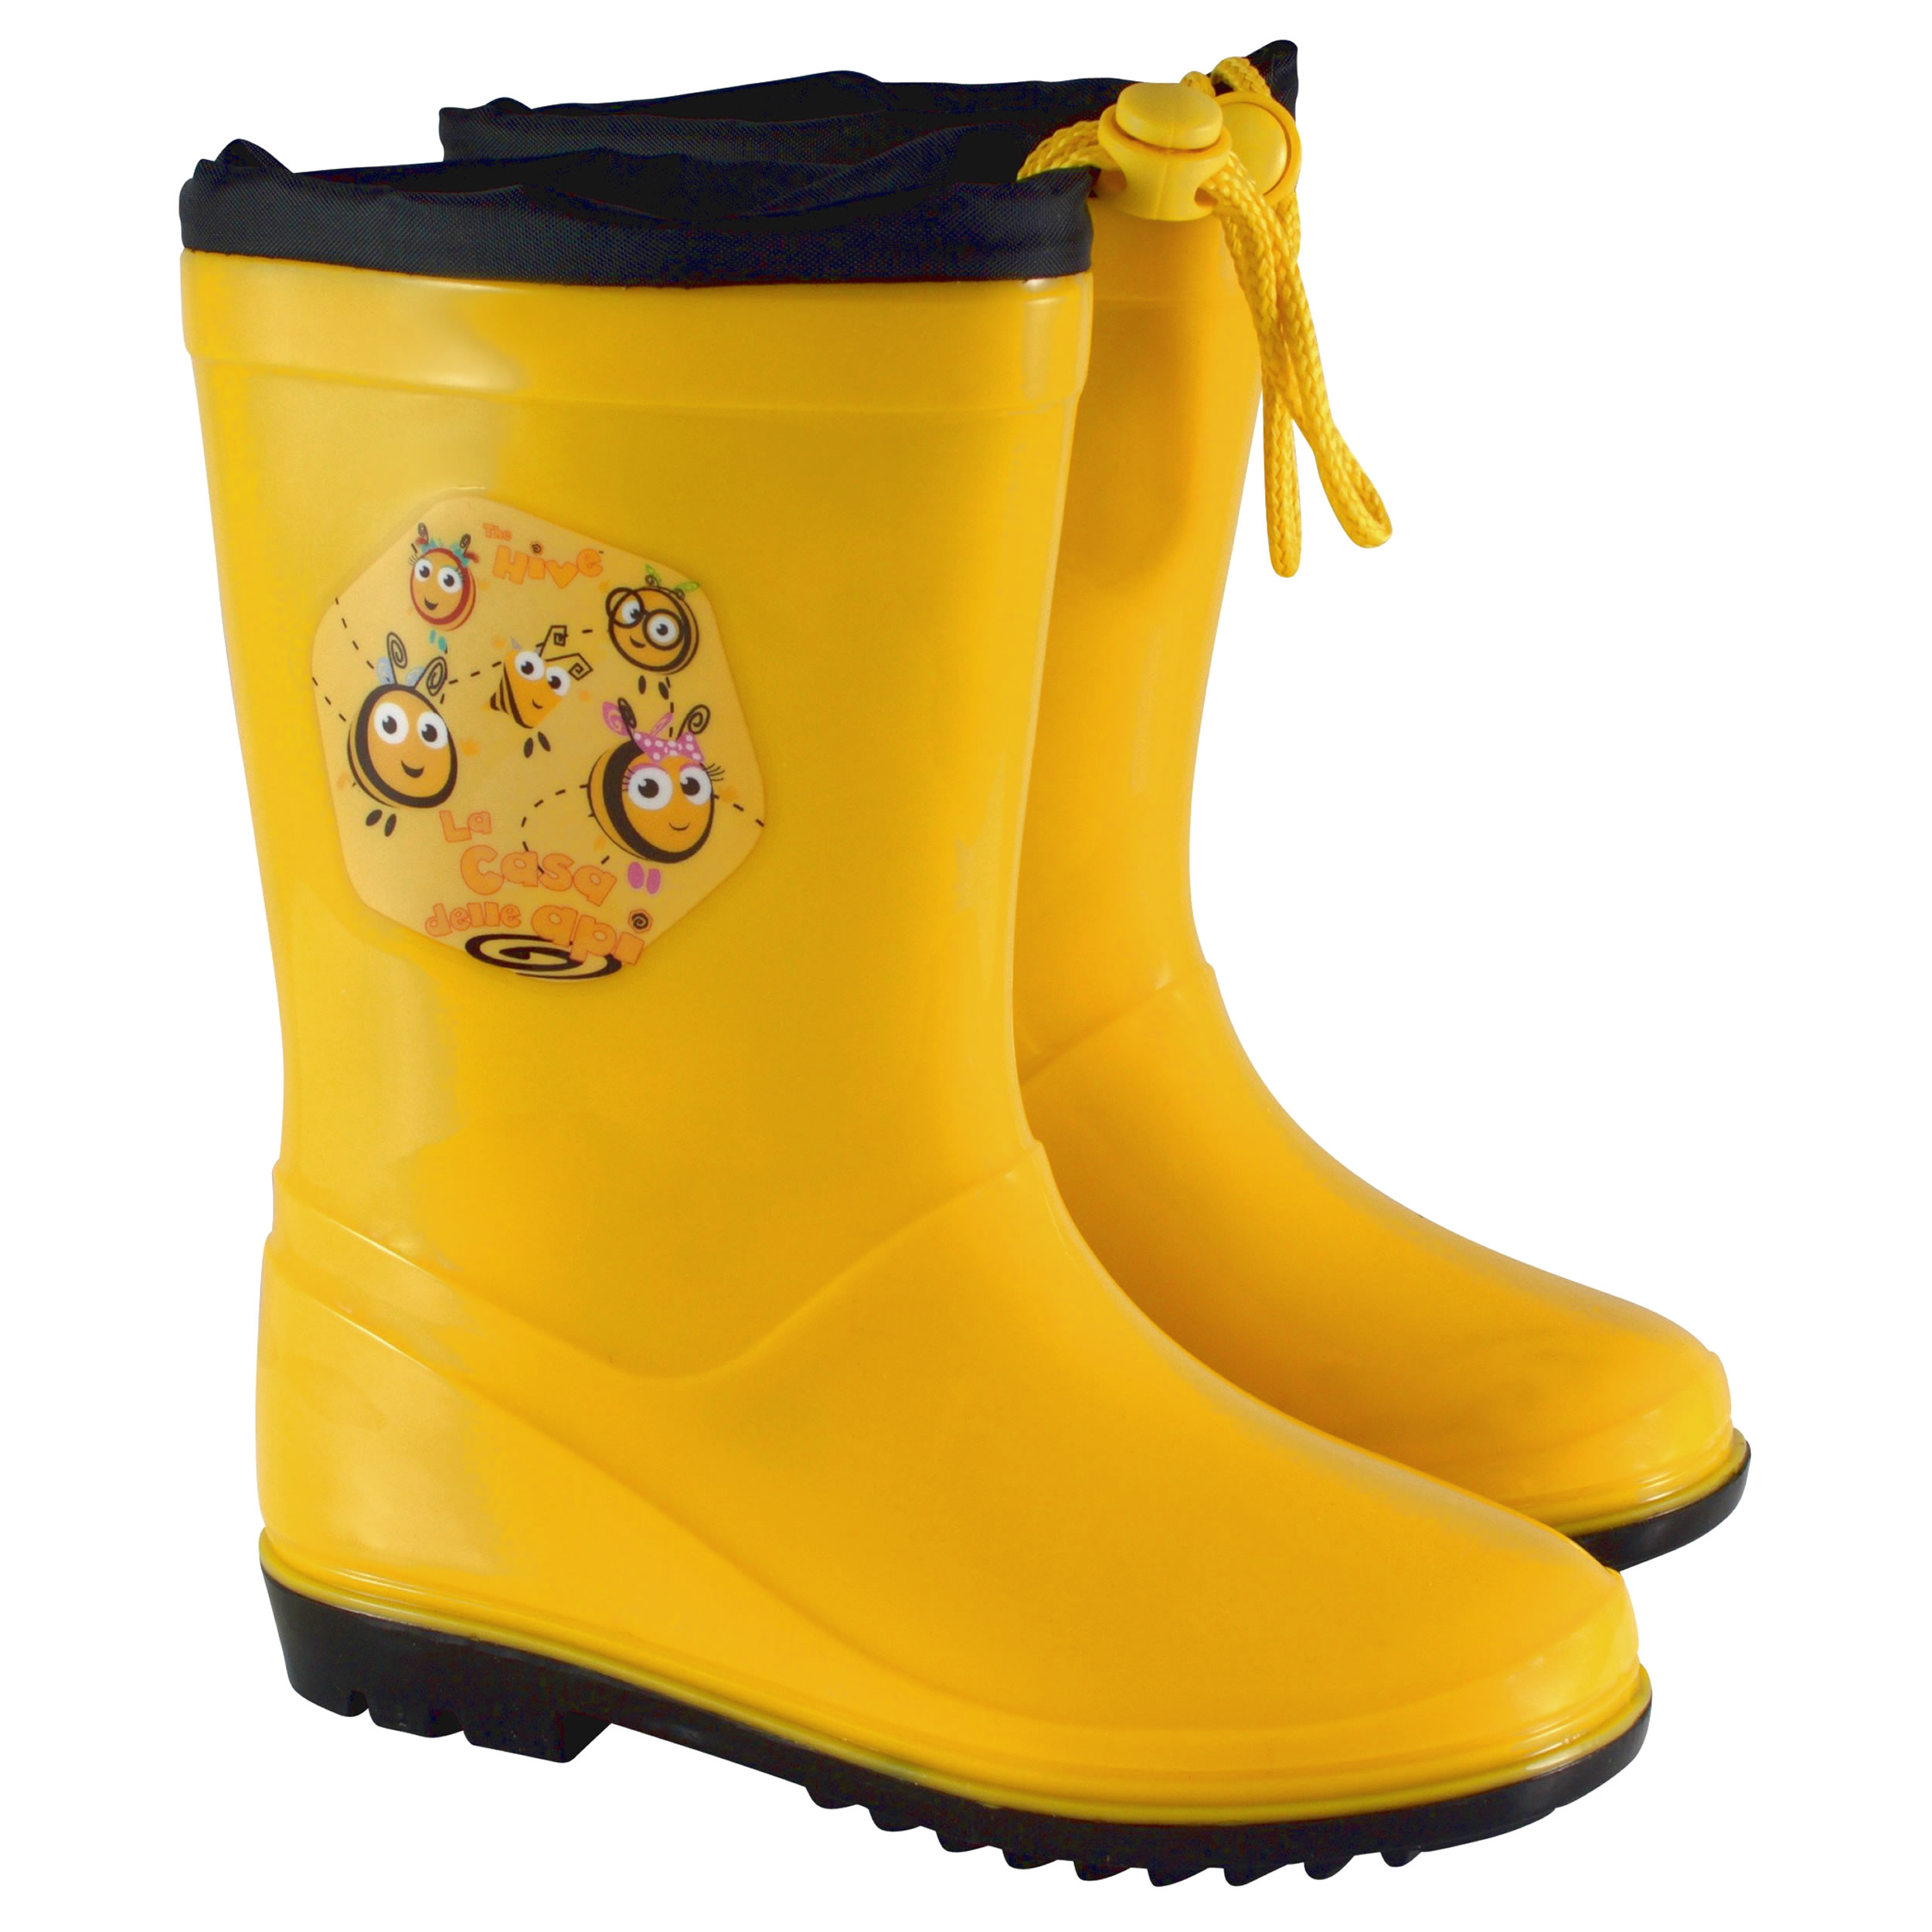 Kids Boots We have all varieties and styles of kids' boots that are perfect for your little one. With snow boots, rain boots, leather boots, cowboy boots, waterproof boots and more, your child will be both comfortable and protected from the elements.